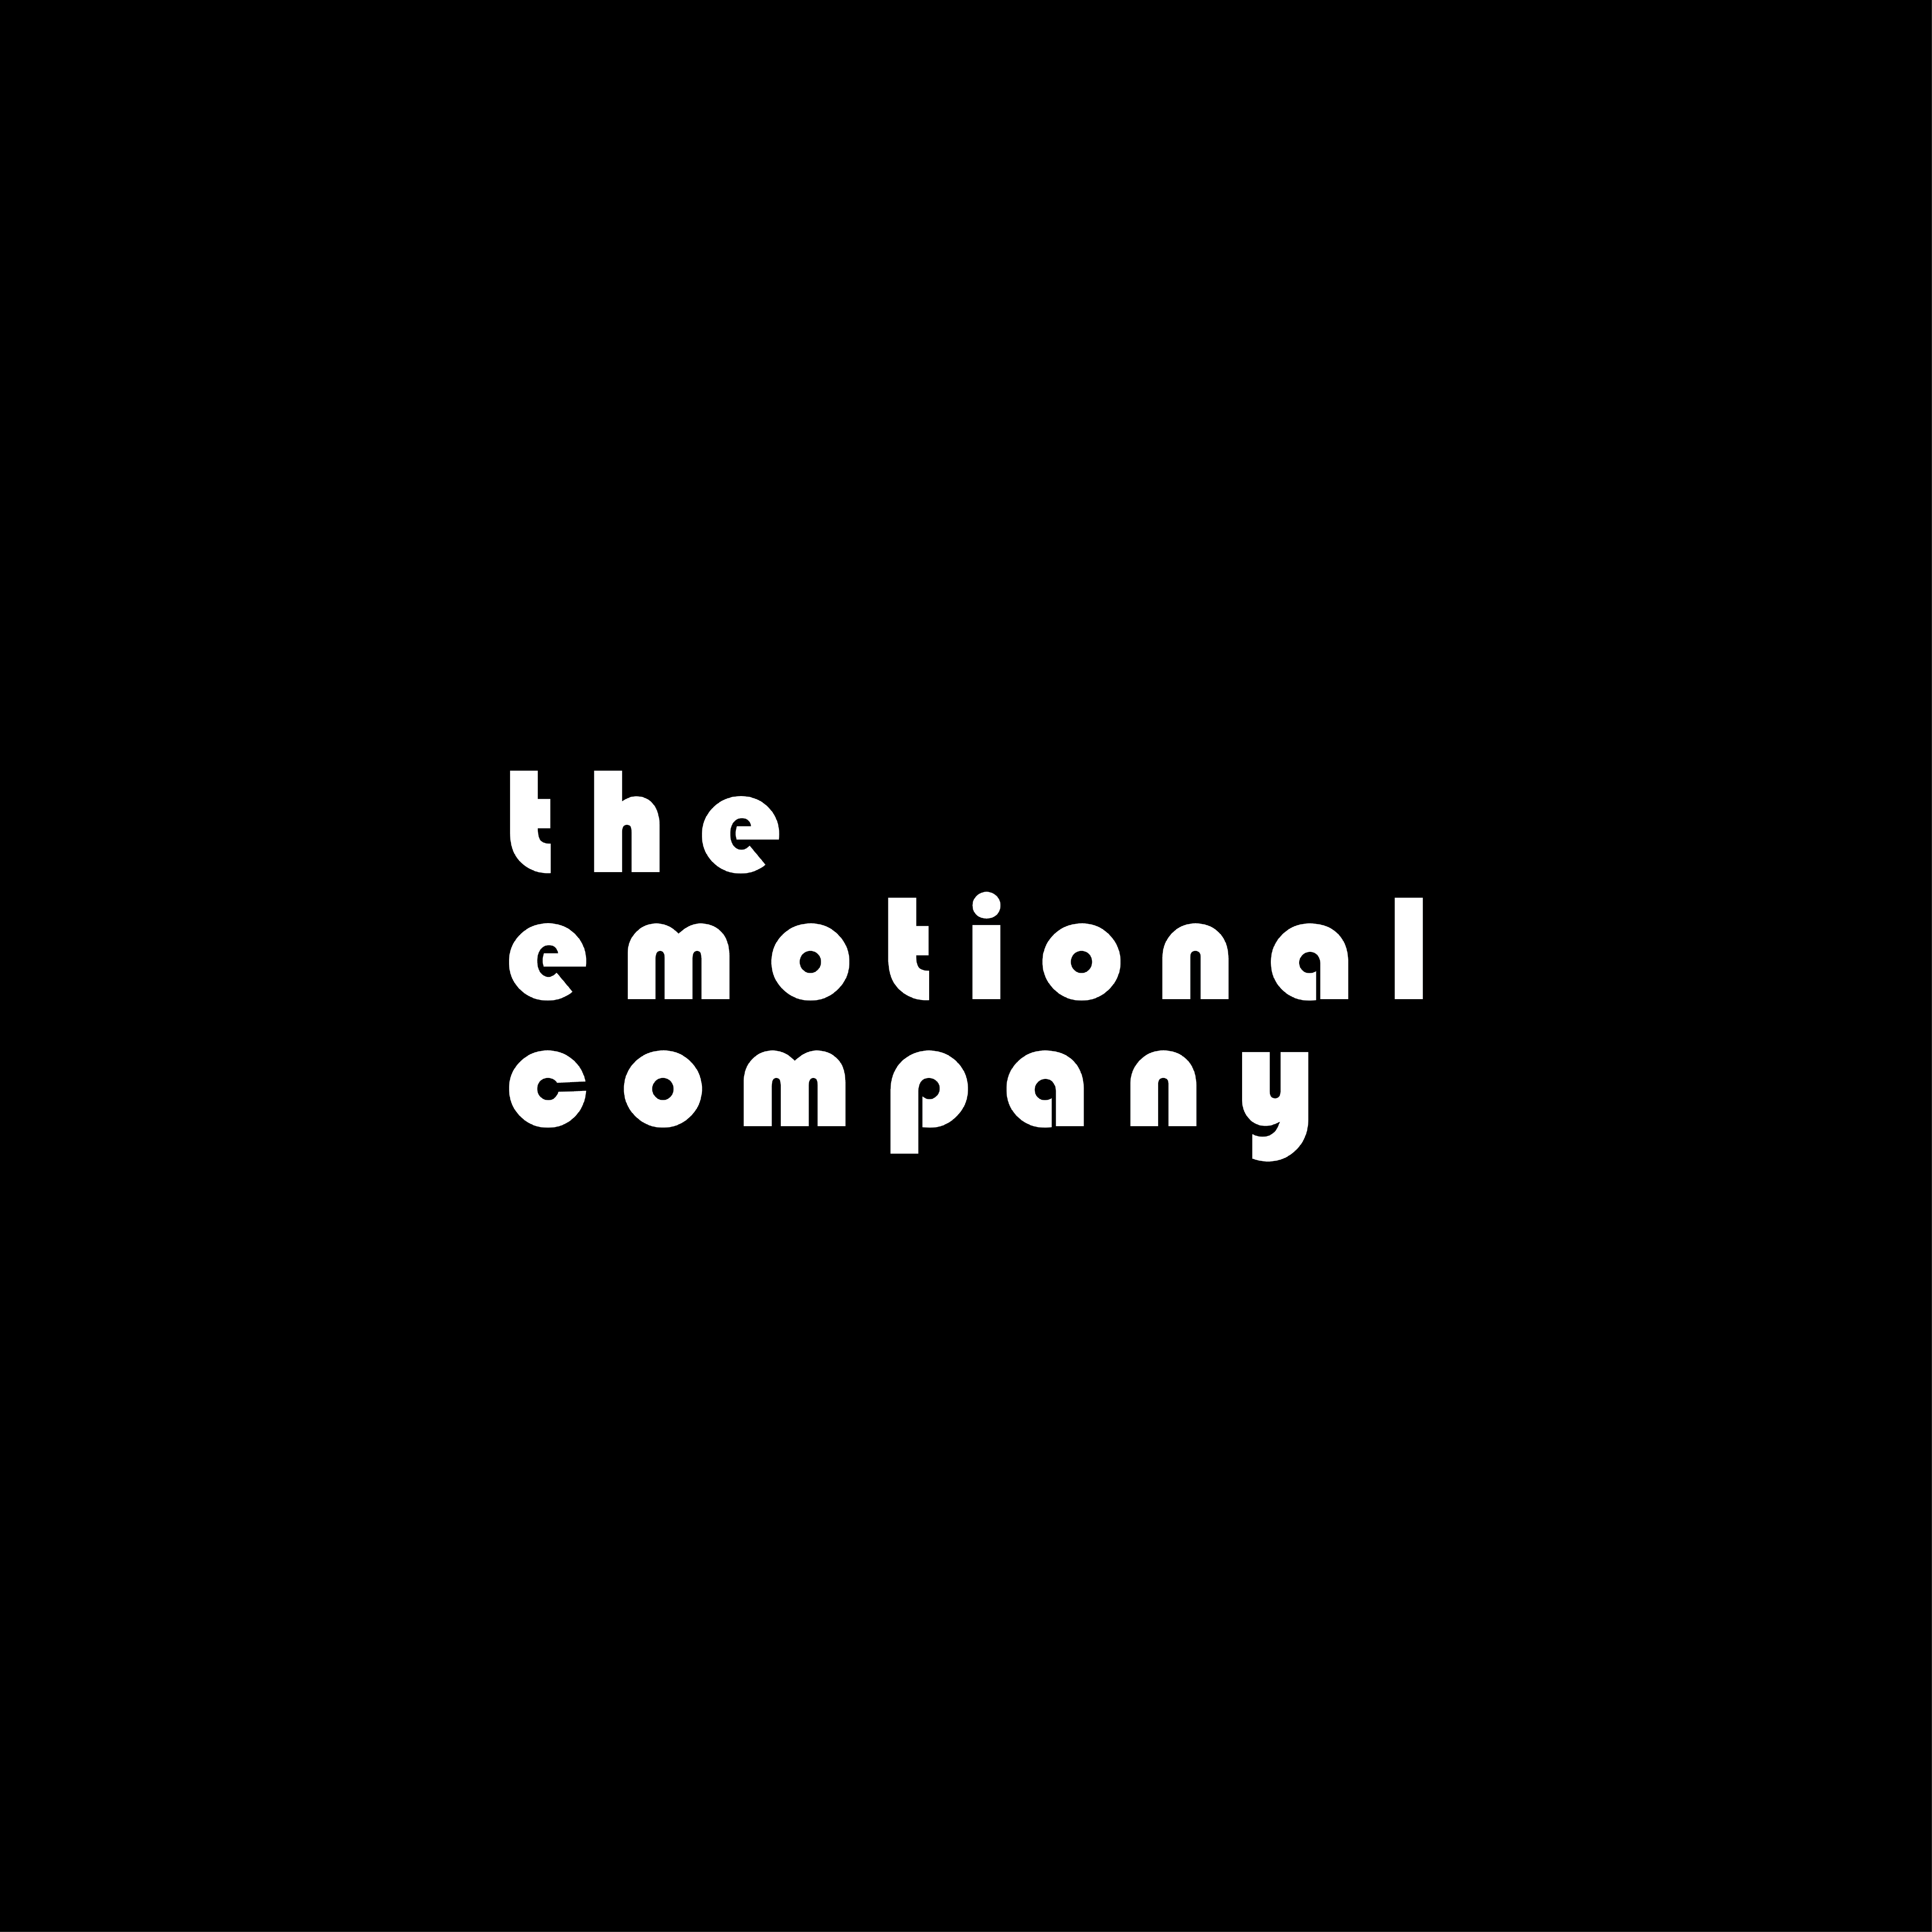 The Emotional Company Logo